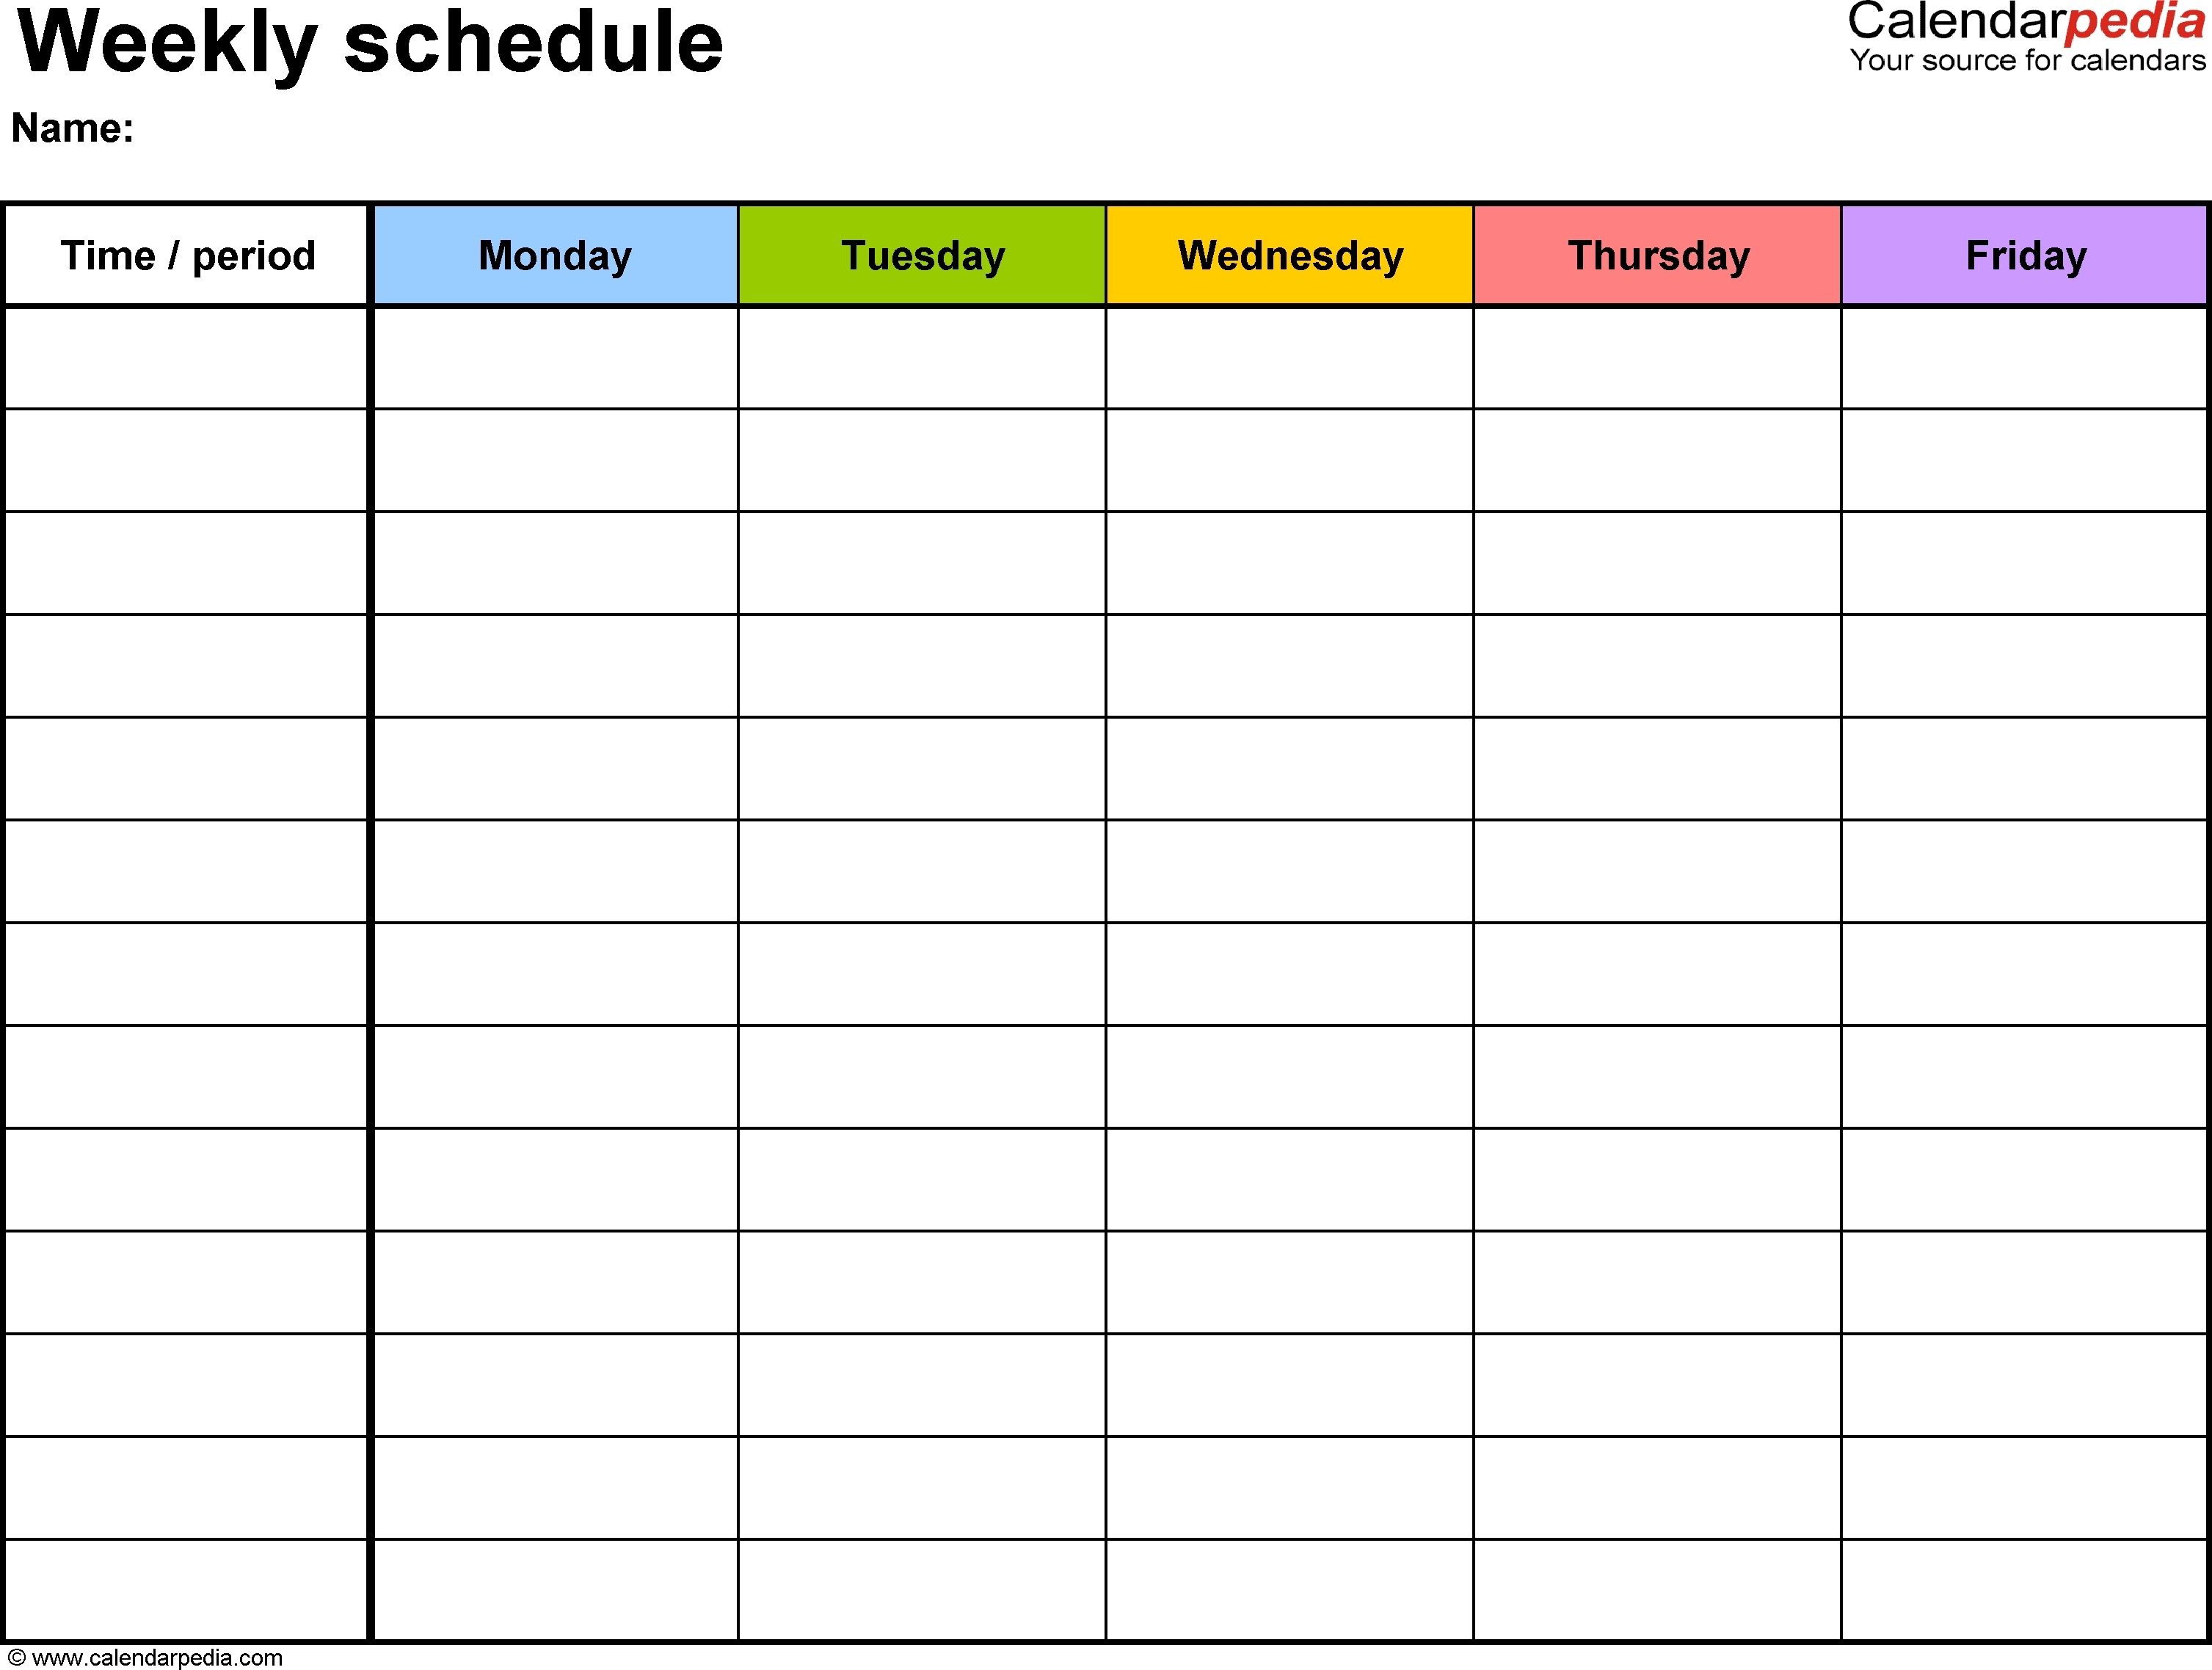 Free Weekly Schedule Templates For Word - 18 Templates pertaining to 7 Day Week Free Schedule Template